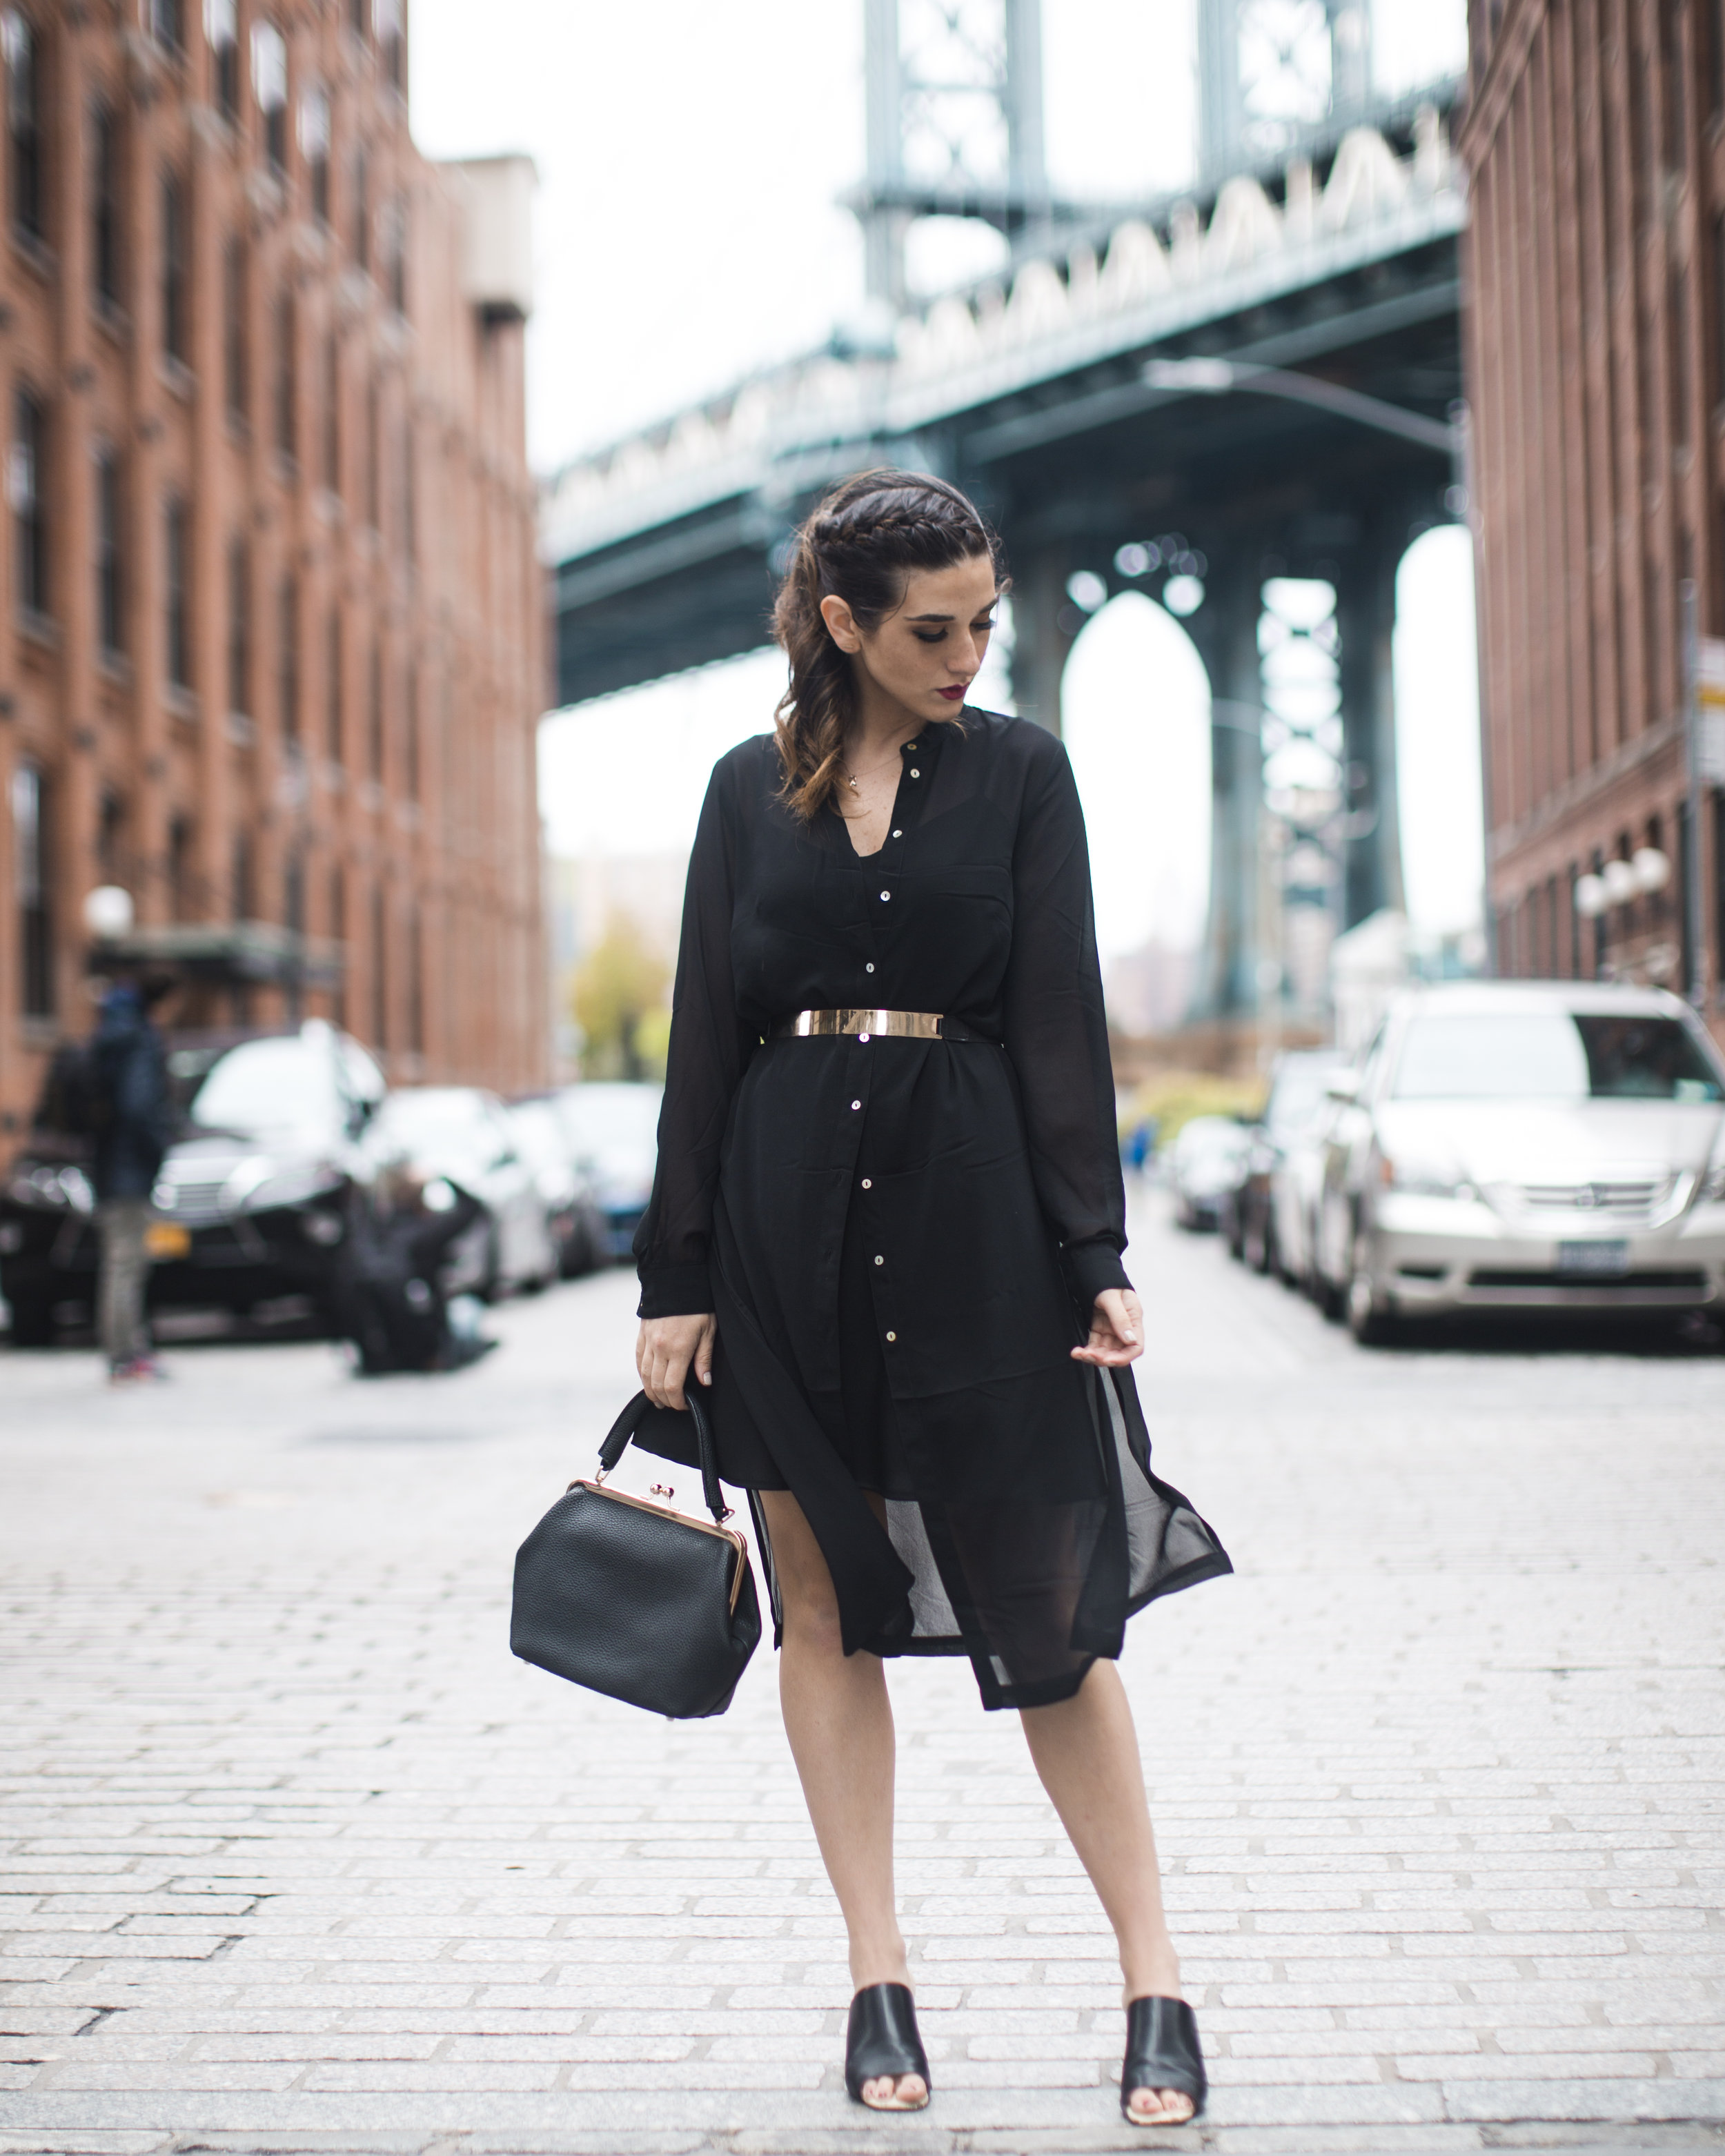 Gold Ribbon Pendant Leibish and Co. Diamonds Louboutins & Love Fashion Blog Esther Santer NYC Street Style Blogger Monochrome Mules Necklace Braid Hair Girl Women Shirt Dress All Black Outfit Trendy Jewelry Red Lipstick OOTD Inspo Wear Bag Shop Inspo.jpg